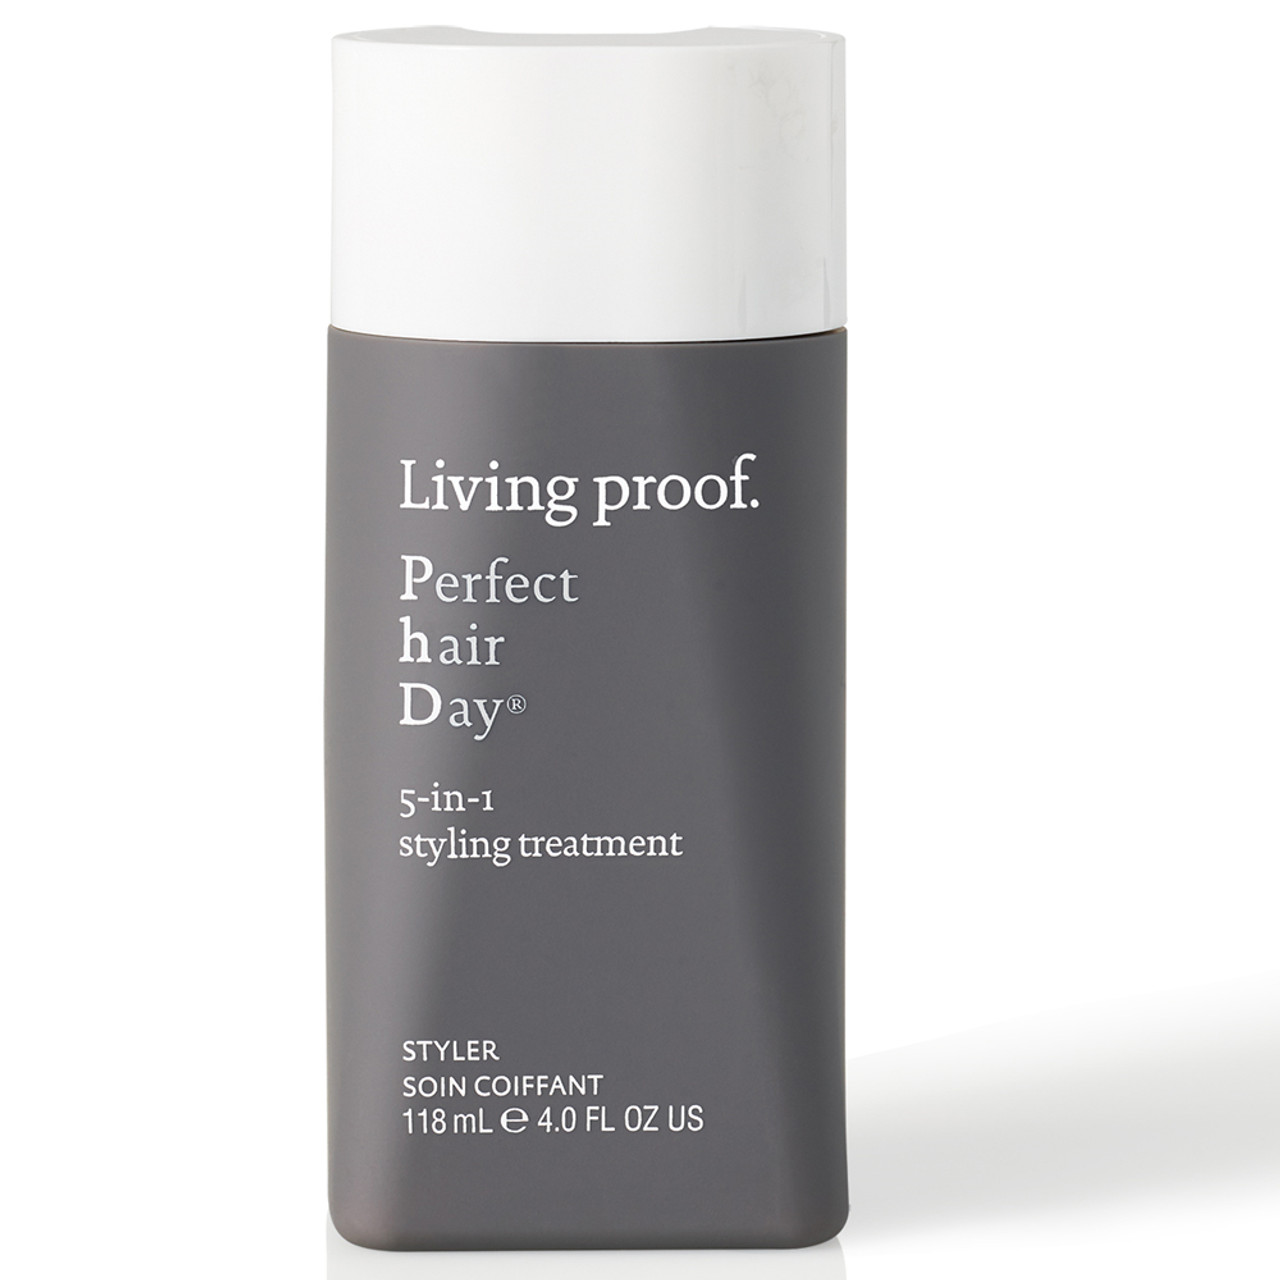 Living Proof Perfect hair Day (PhD) 5-In-1 Styling Treatment BeautifiedYou.com